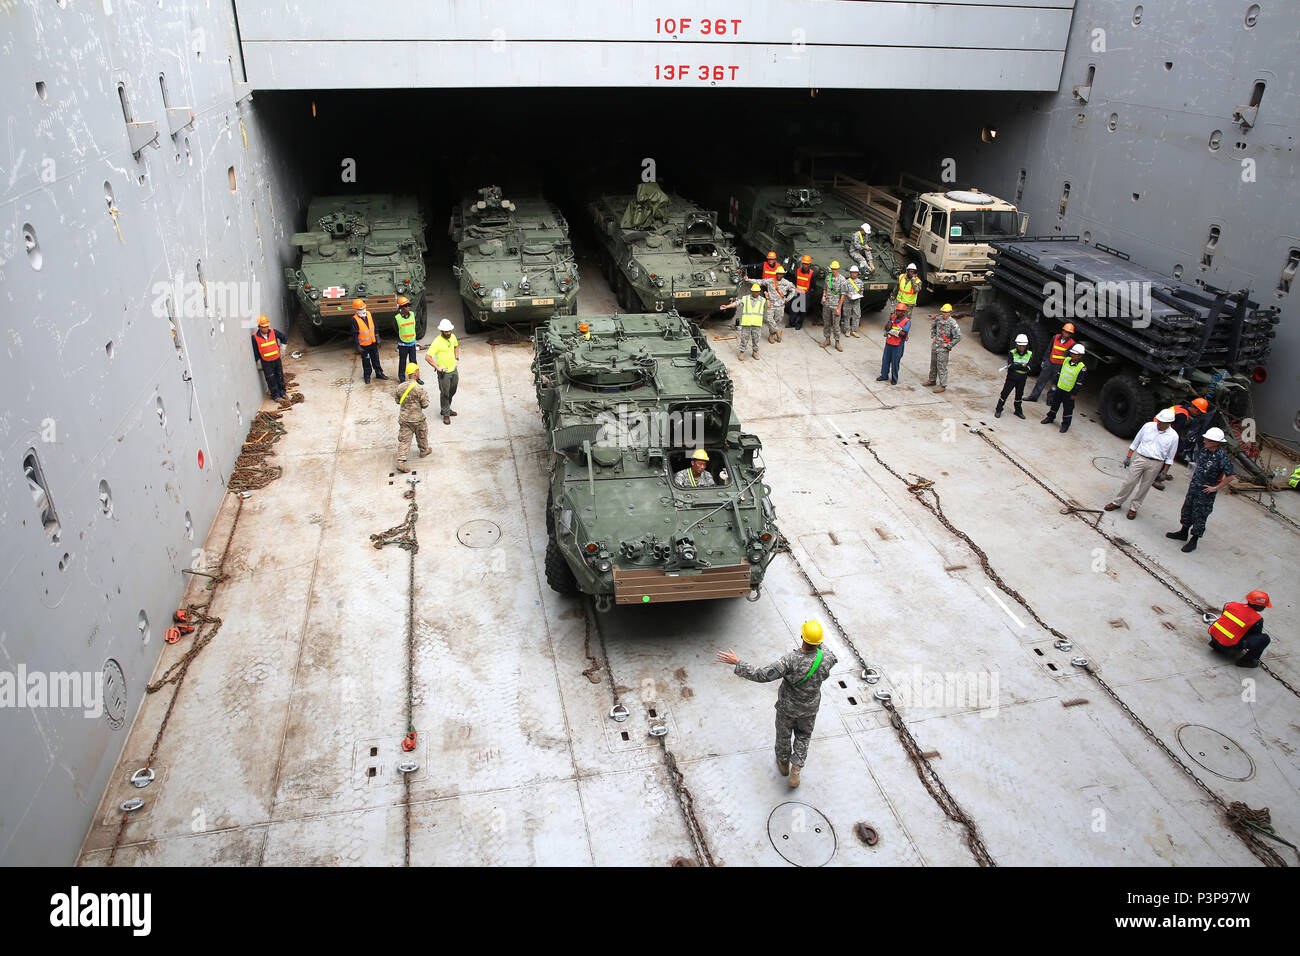 160712-N-IX266-003 SATTAHIP, Thailand—An M1126 Stryker is staged in the cargo deck of general purpose, heavy lift ship MV OCEAN GLORY during a backload of equipment at Chuk Samet, here, from exercise Hanuman Guardian, July 12. Military Sealift Command's contracted voyage-charter MV OCEAN GLORY recently conducted a backload of about 250 items in Thailand as part of U.S. Army Pacific's mobility operation PACIFIC PATHWAYS 16-2. (U.S. Navy photo by Grady T. Fontana/Released) - Stock Image